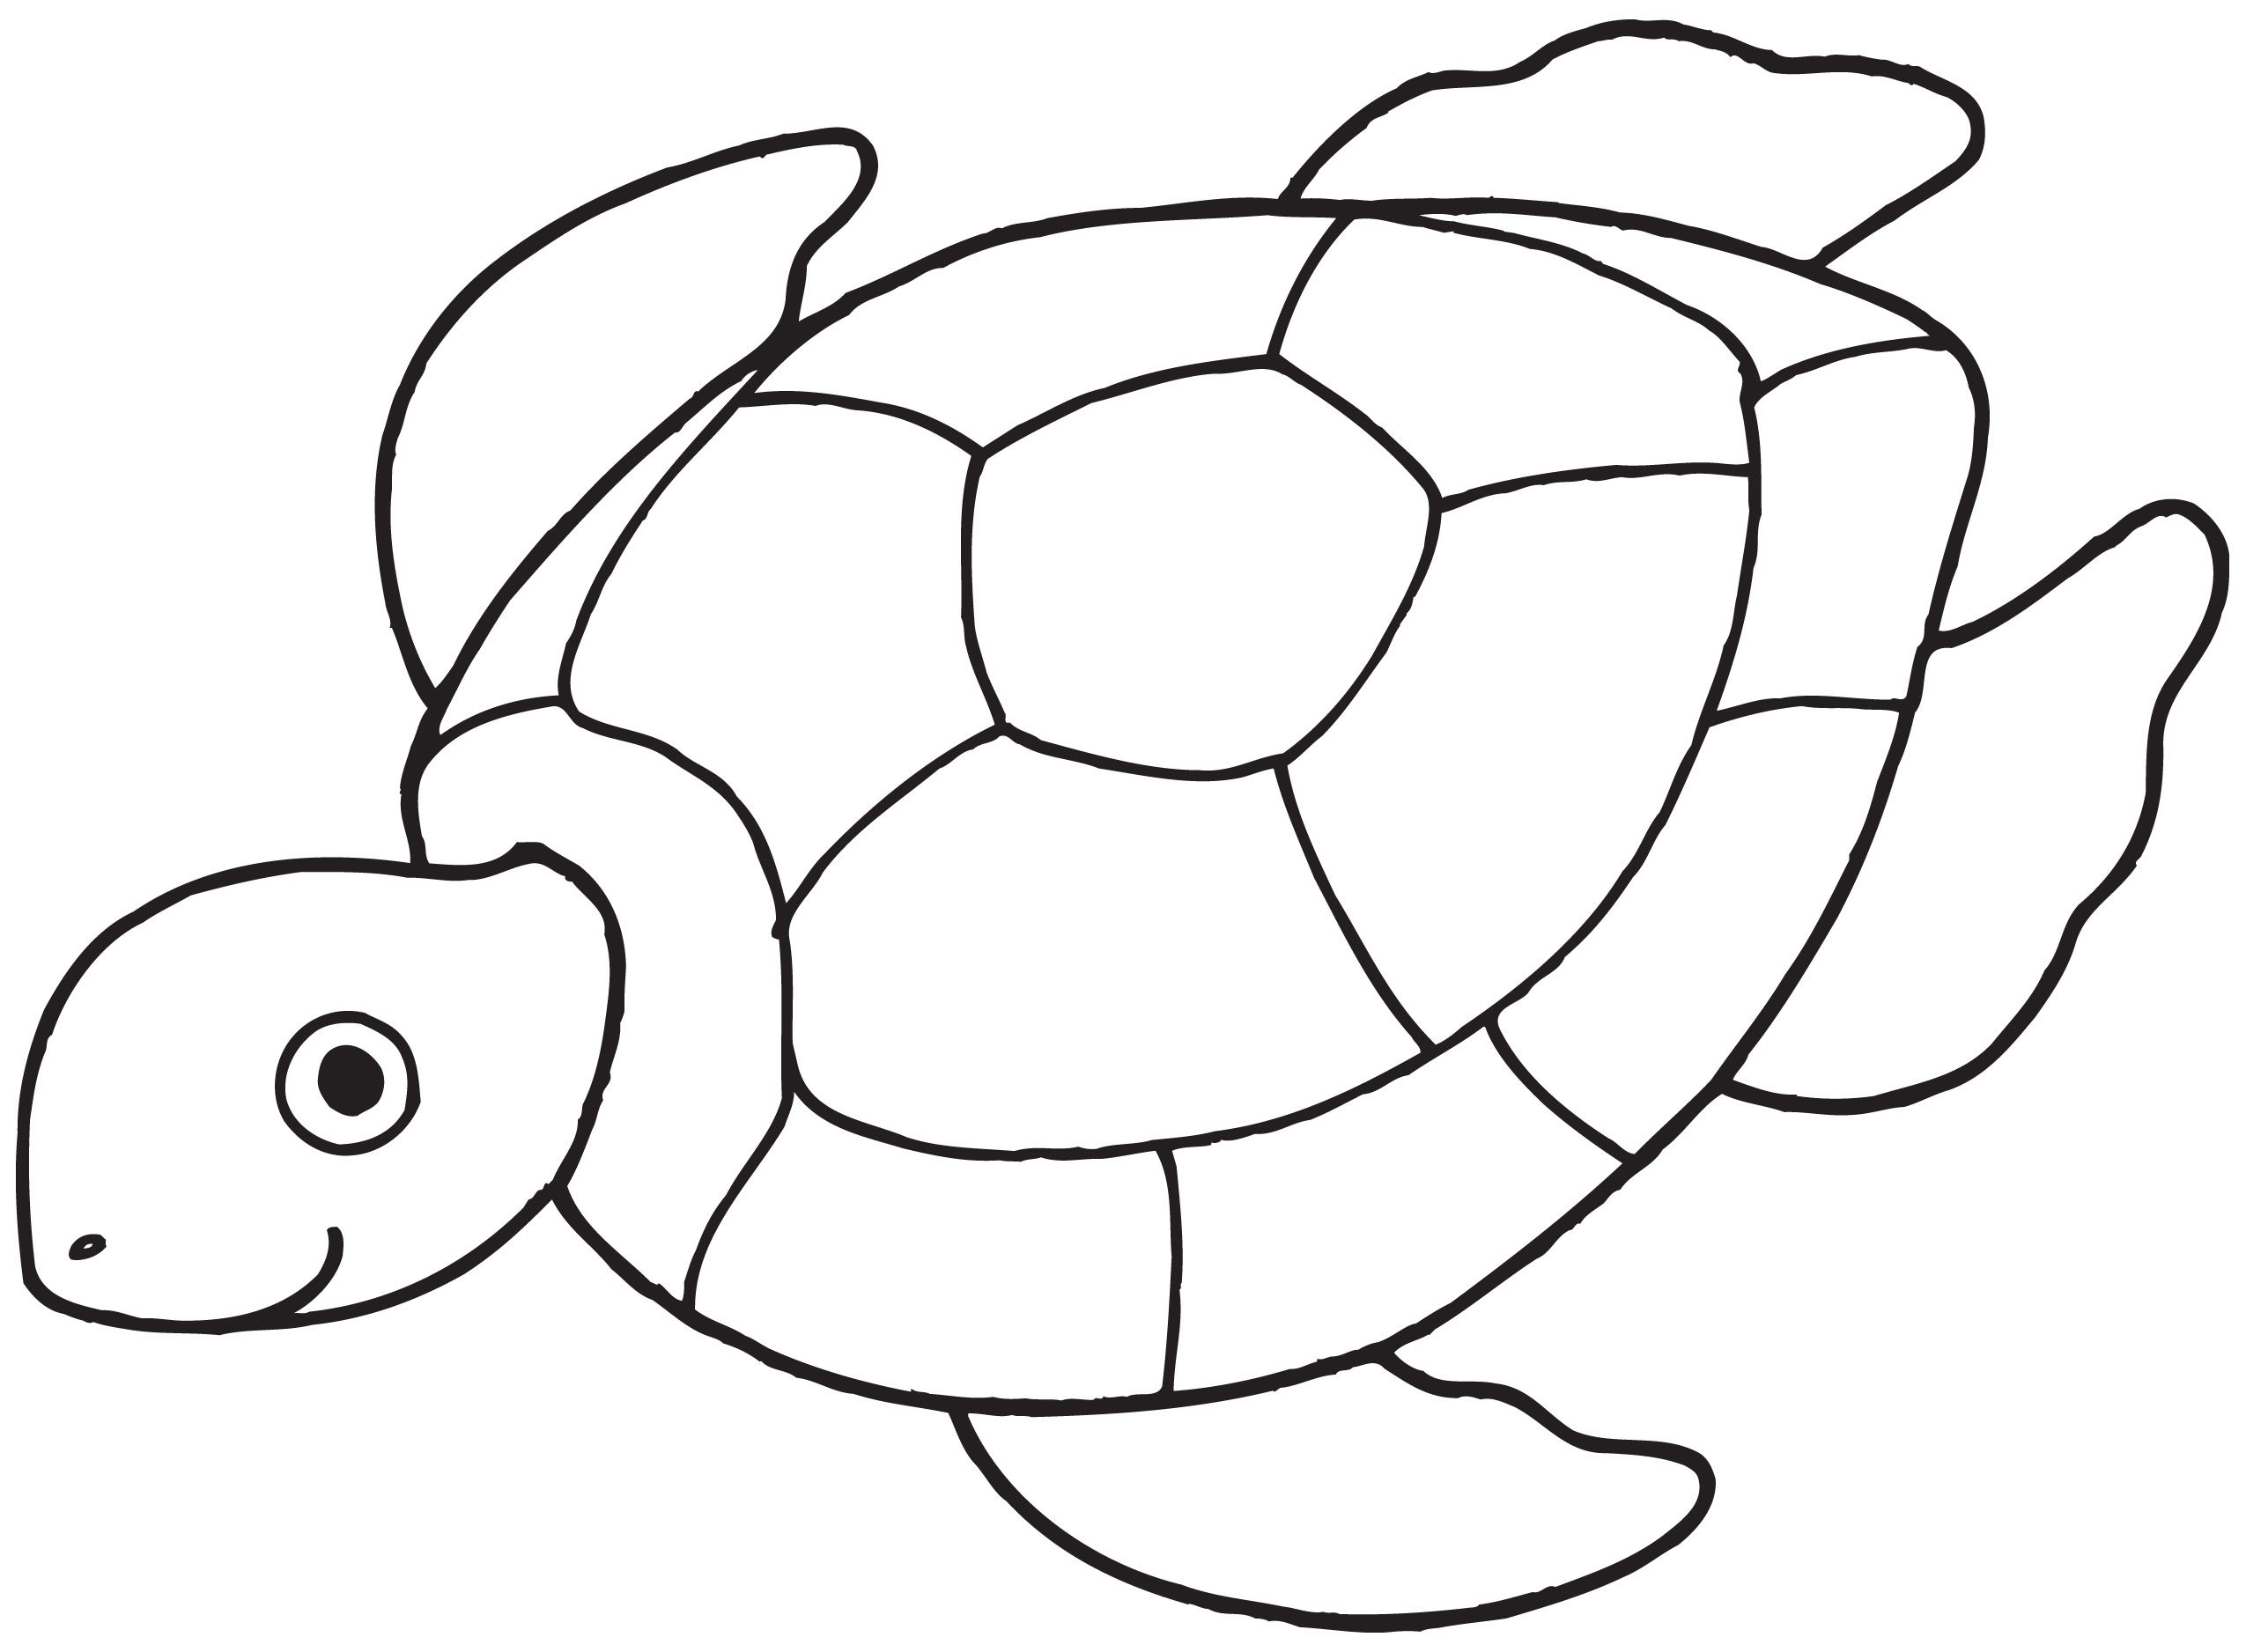 Uncategorized How To Draw A Turtle For Kids kids art lesson how to draw a sea turtle lessons and drawings